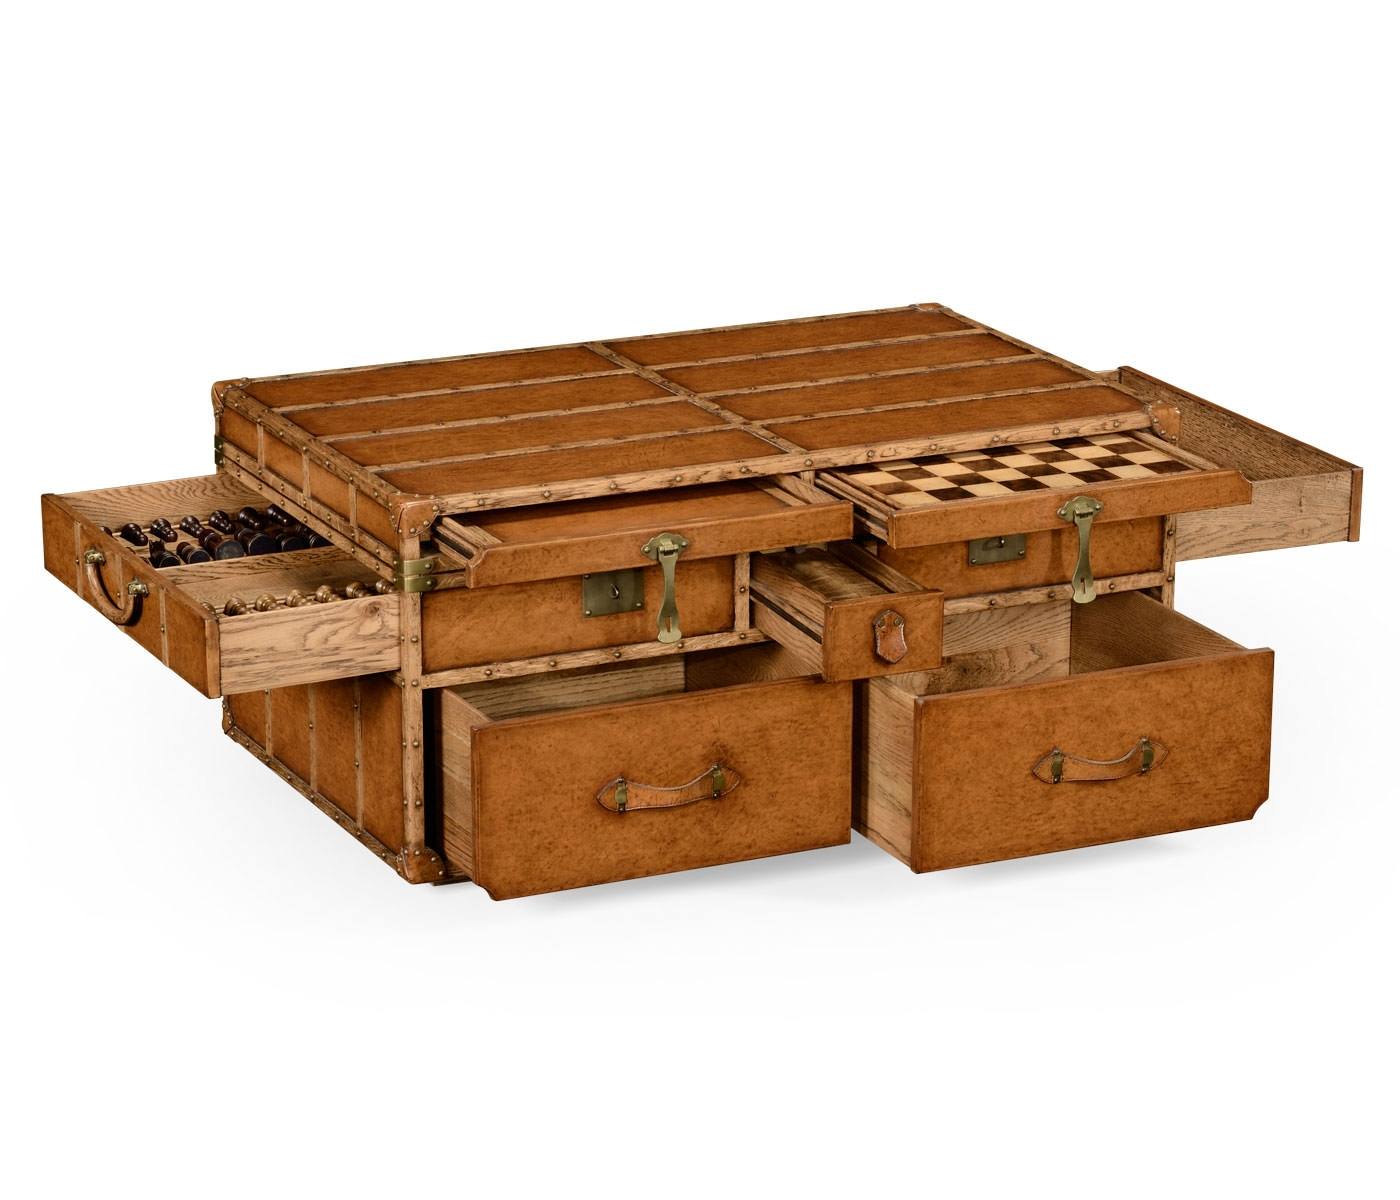 Stunning Storage Trunk Coffee Table Ideas And Design — Sushi Within Sliced Trunk Coffee Tables (View 20 of 30)